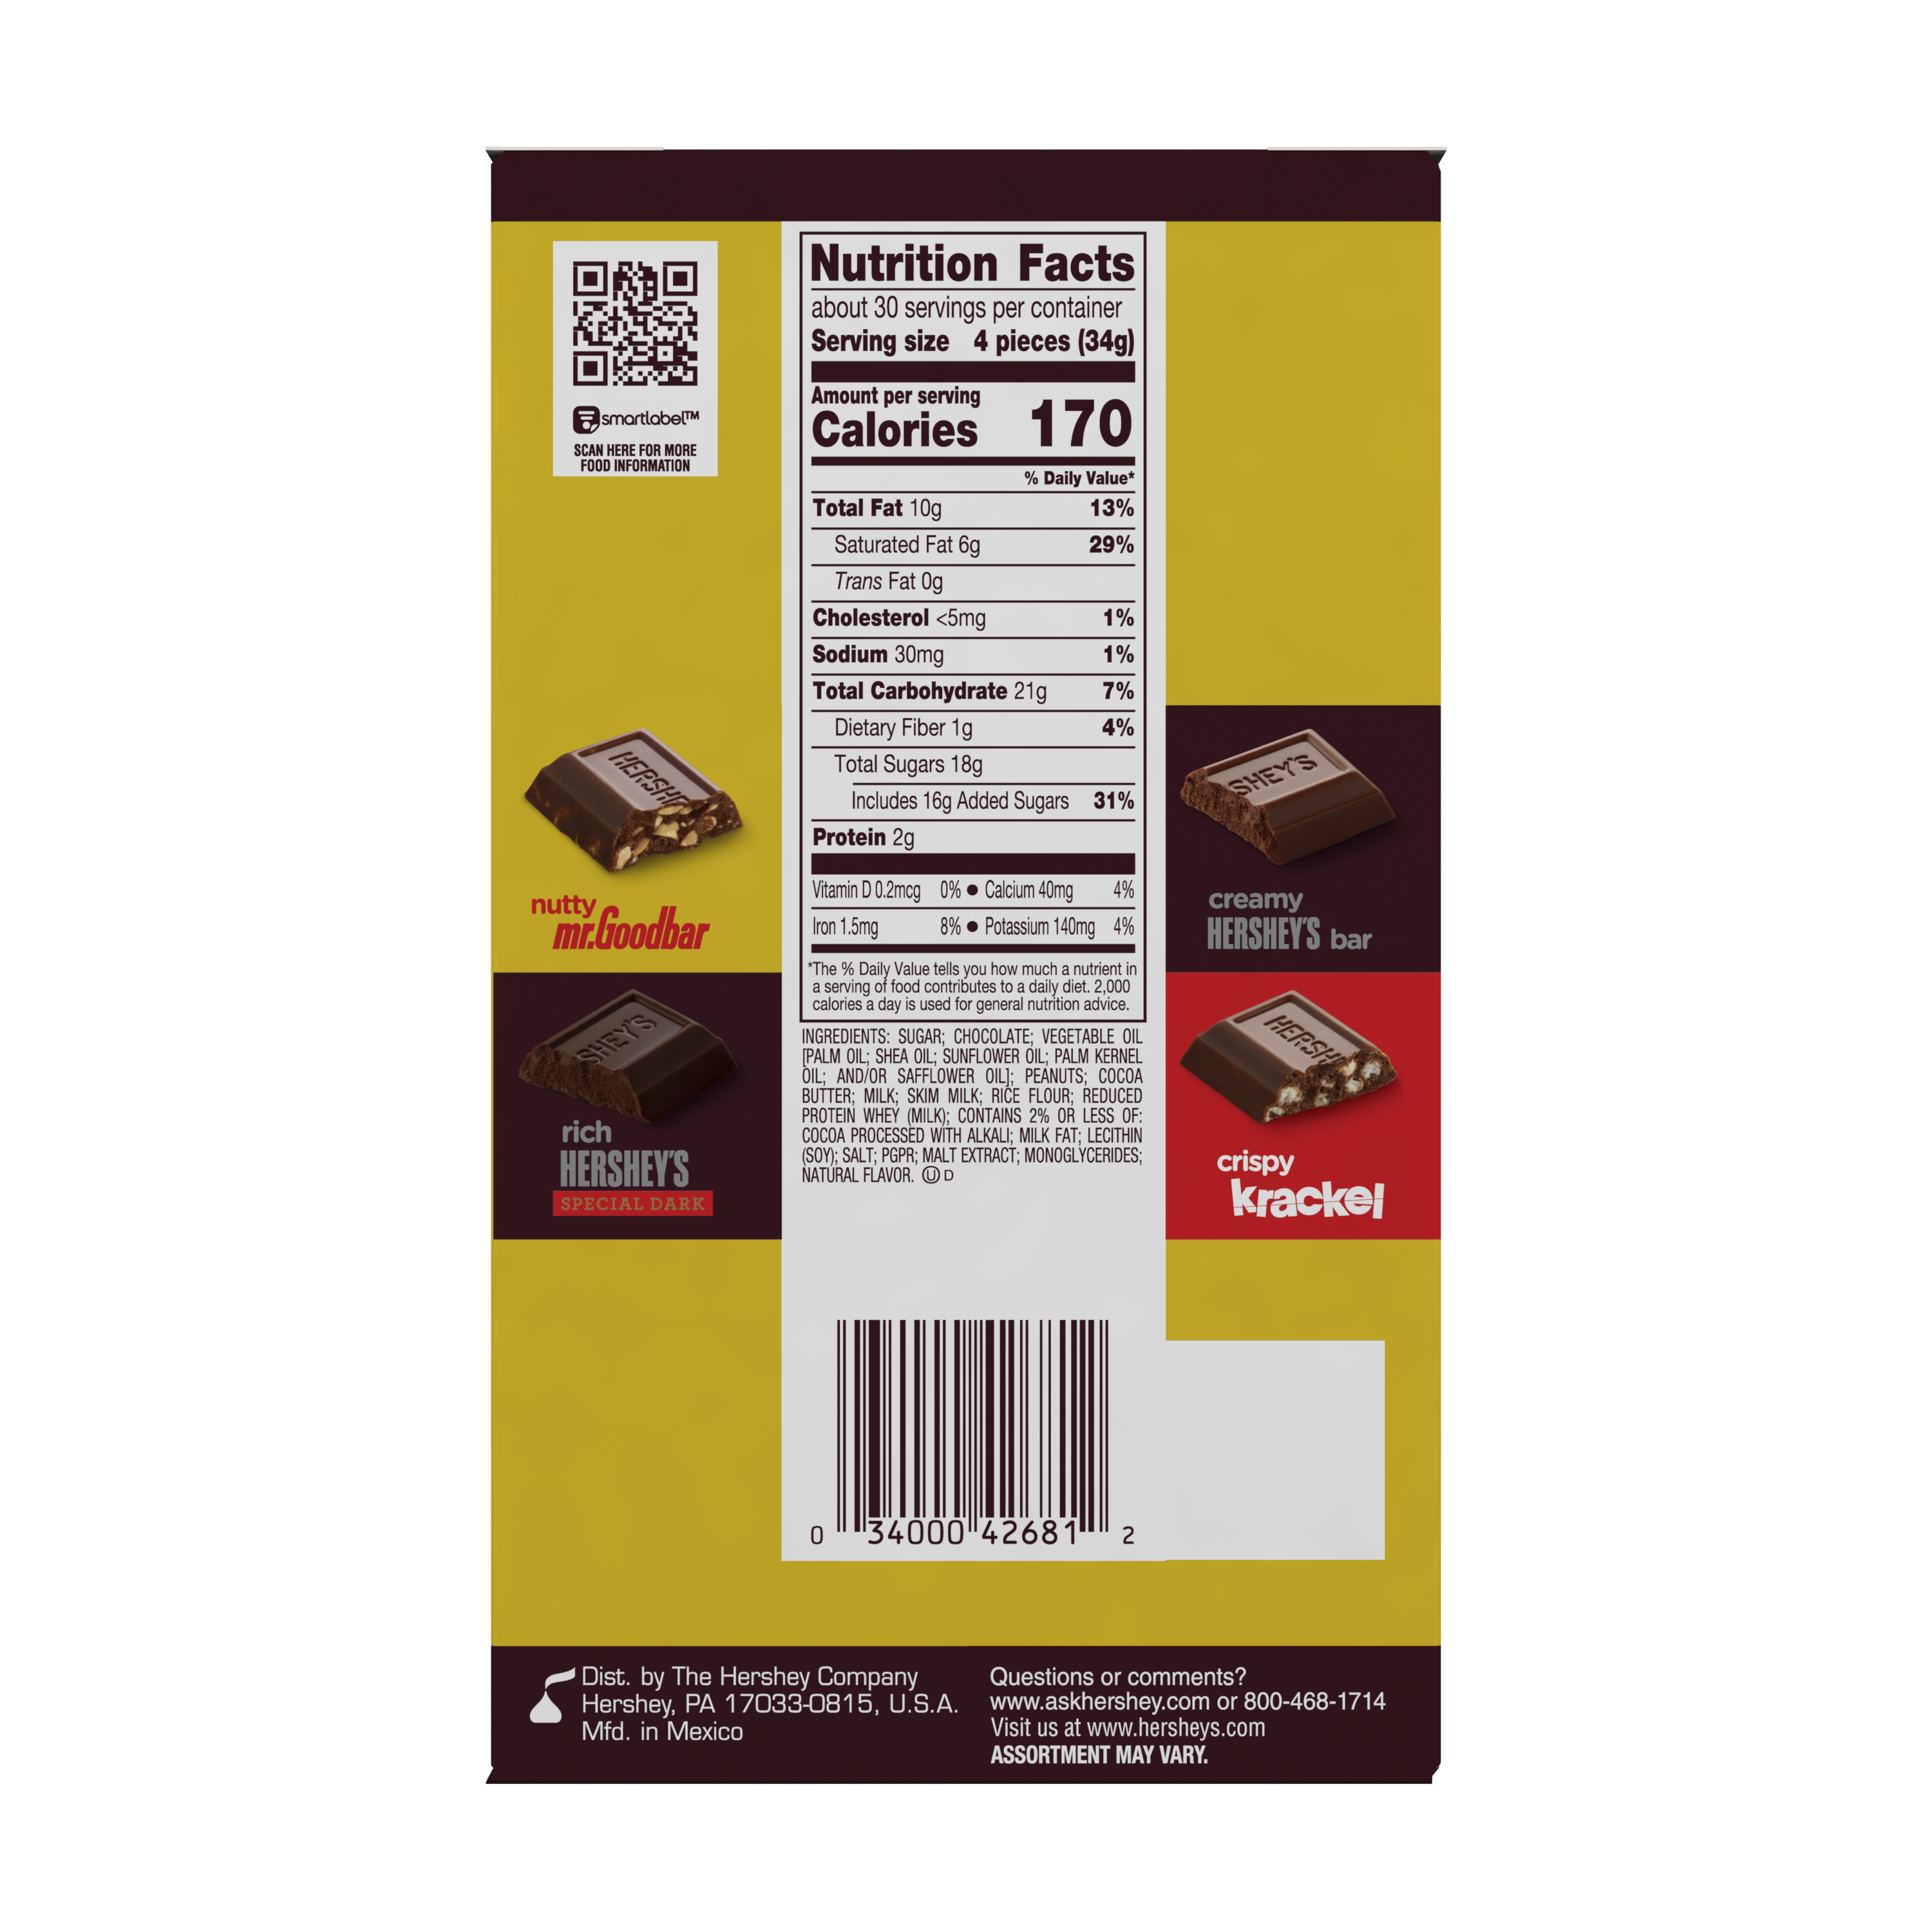 HERSHEY'S Chocolate Miniatures Candy, 36 oz box, 120 pieces - Back of Package